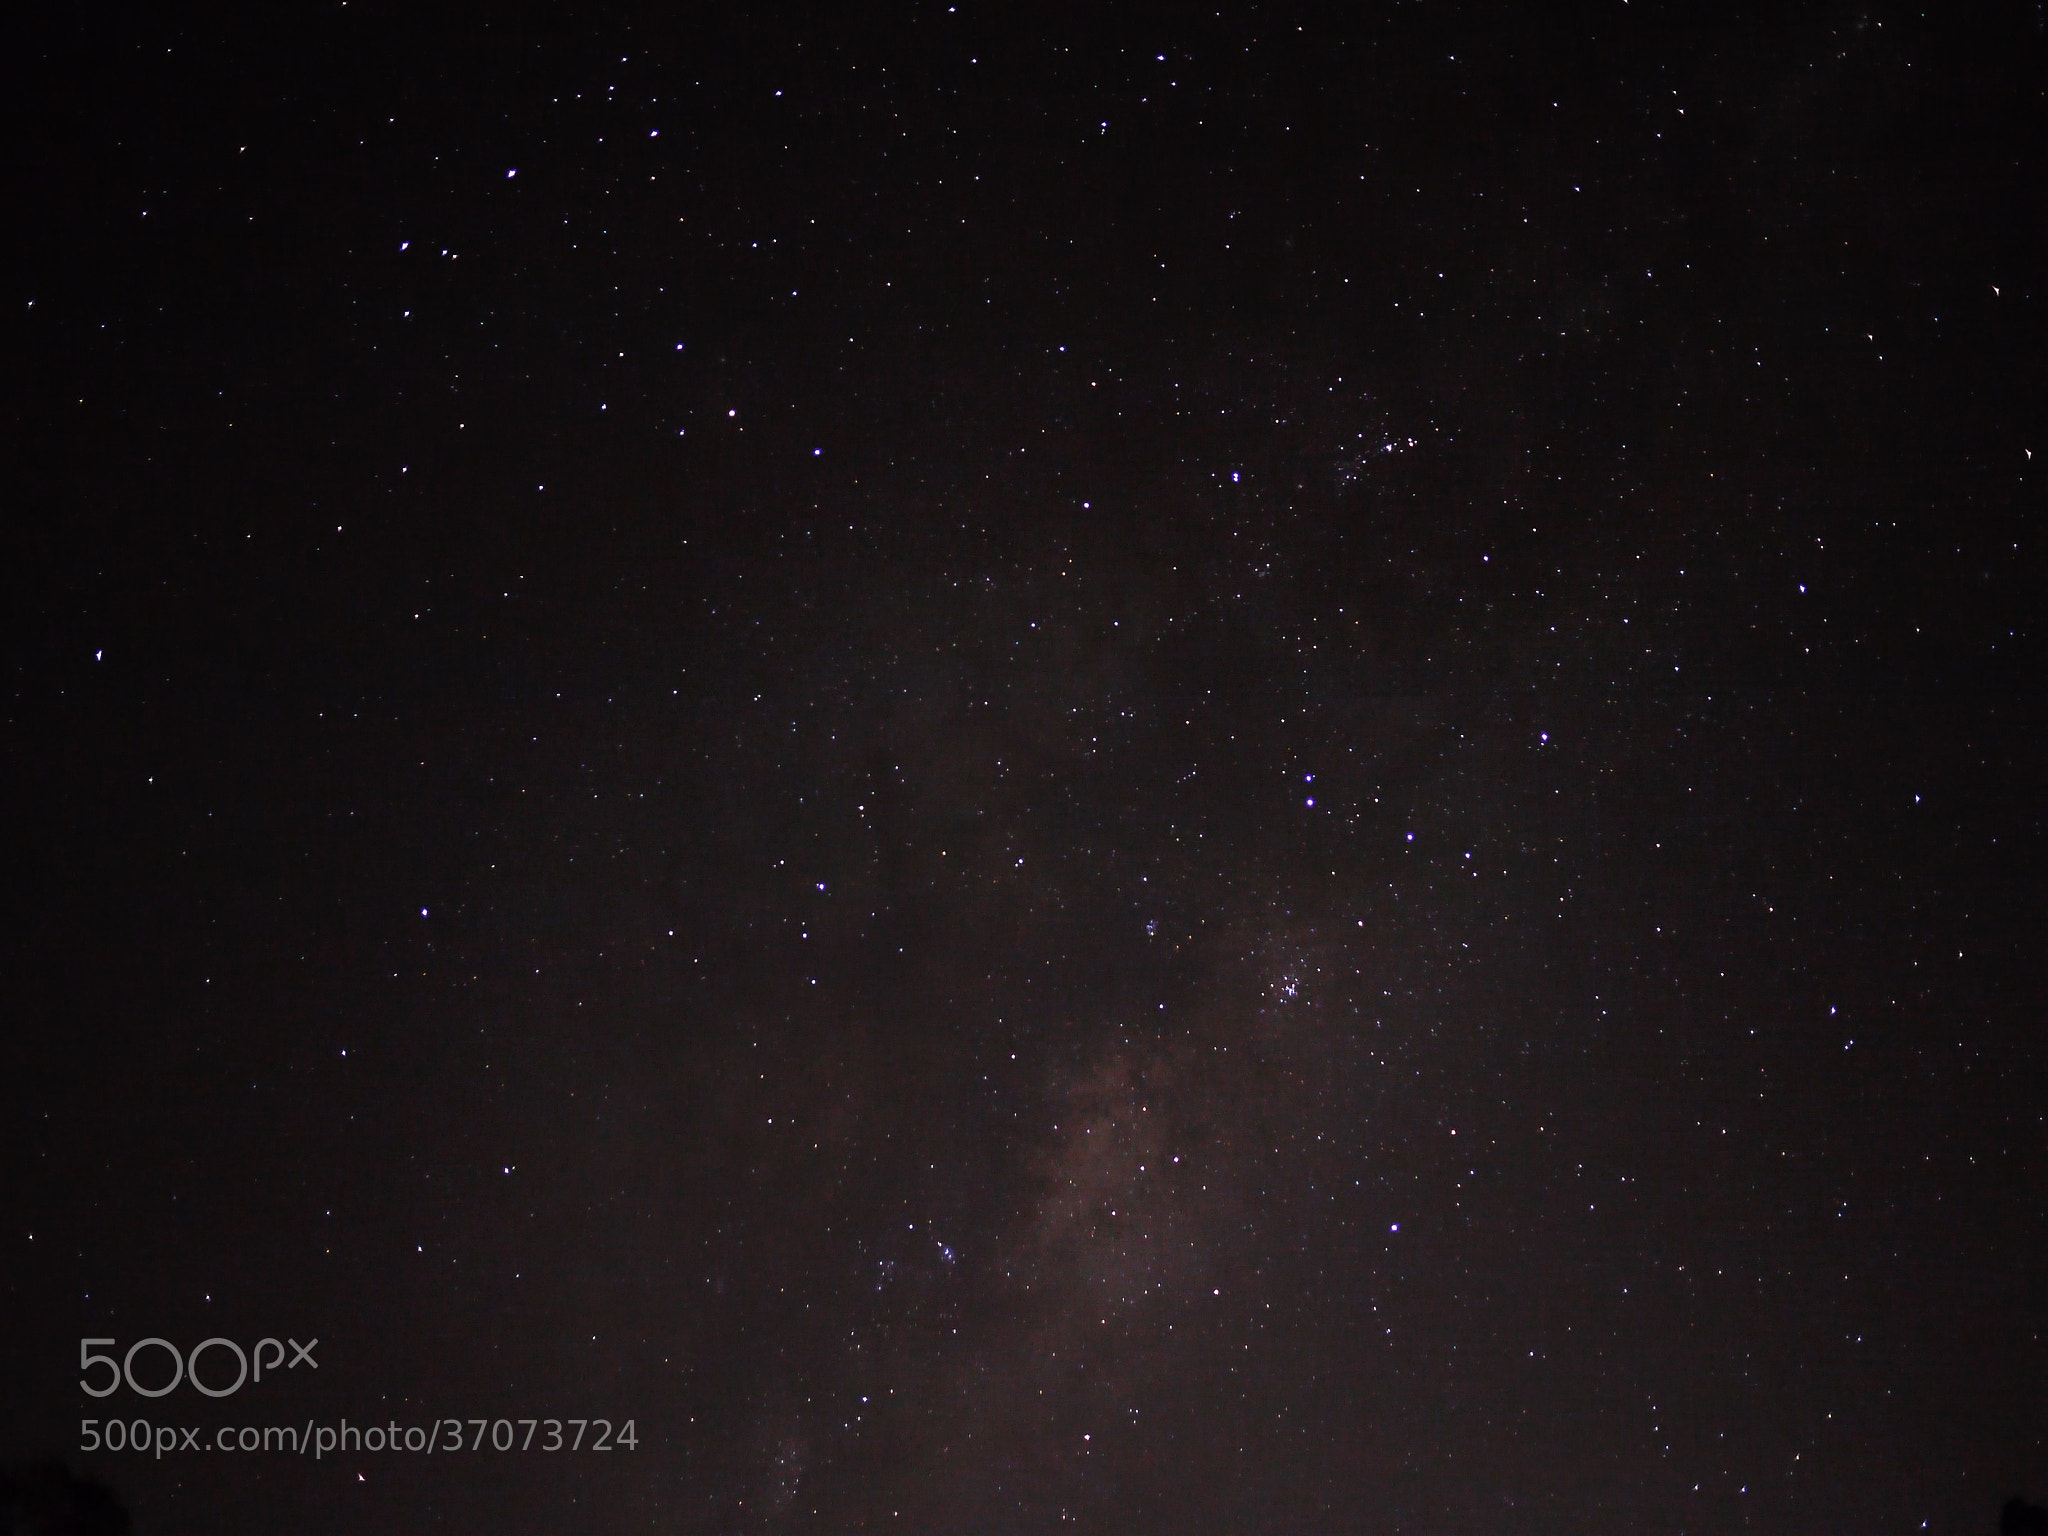 Photograph Scorpius and the Milky Way by tsuken on 500px